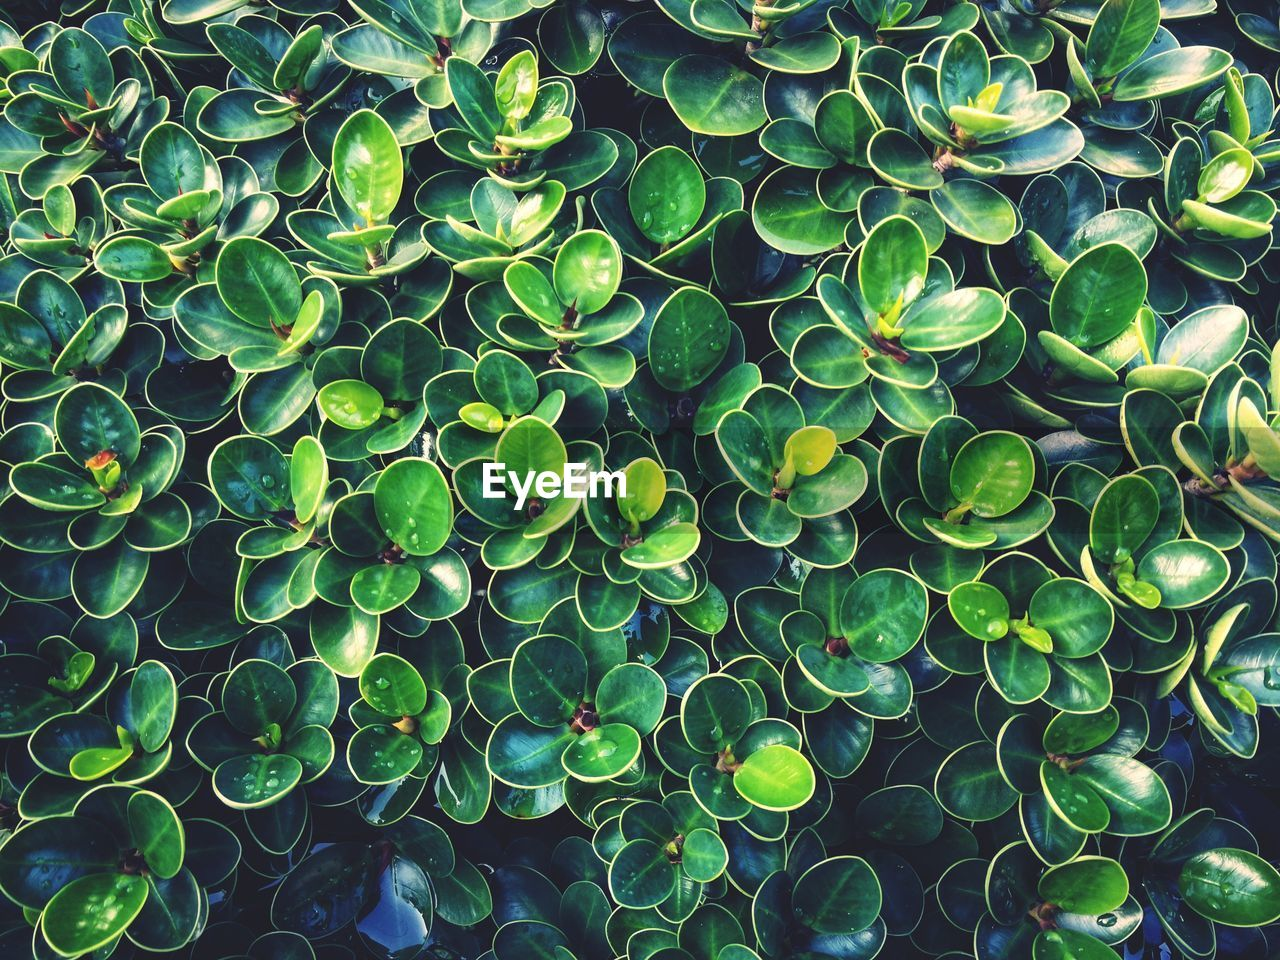 HIGH ANGLE VIEW OF SUCCULENT PLANT